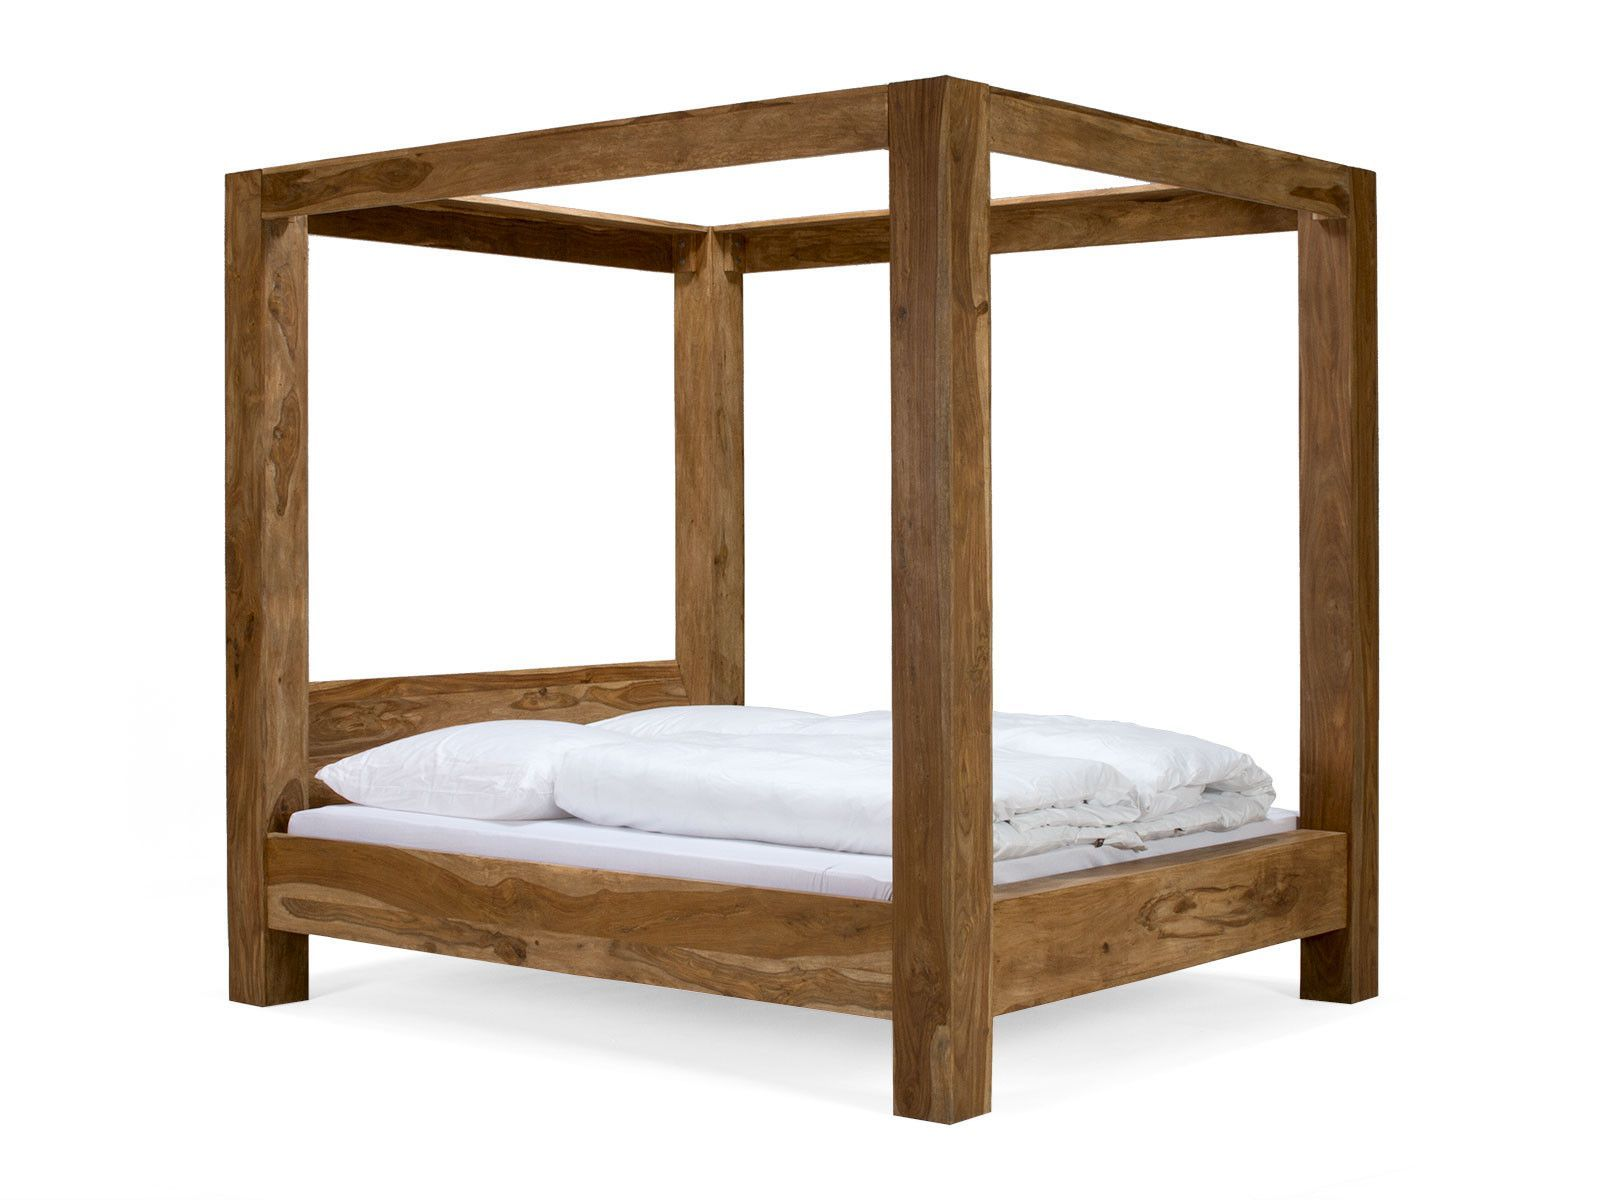 Holzbetten 180x200 Himmelbett Stark Kinderzimmer Bed Bedroom Und Diy Furniture